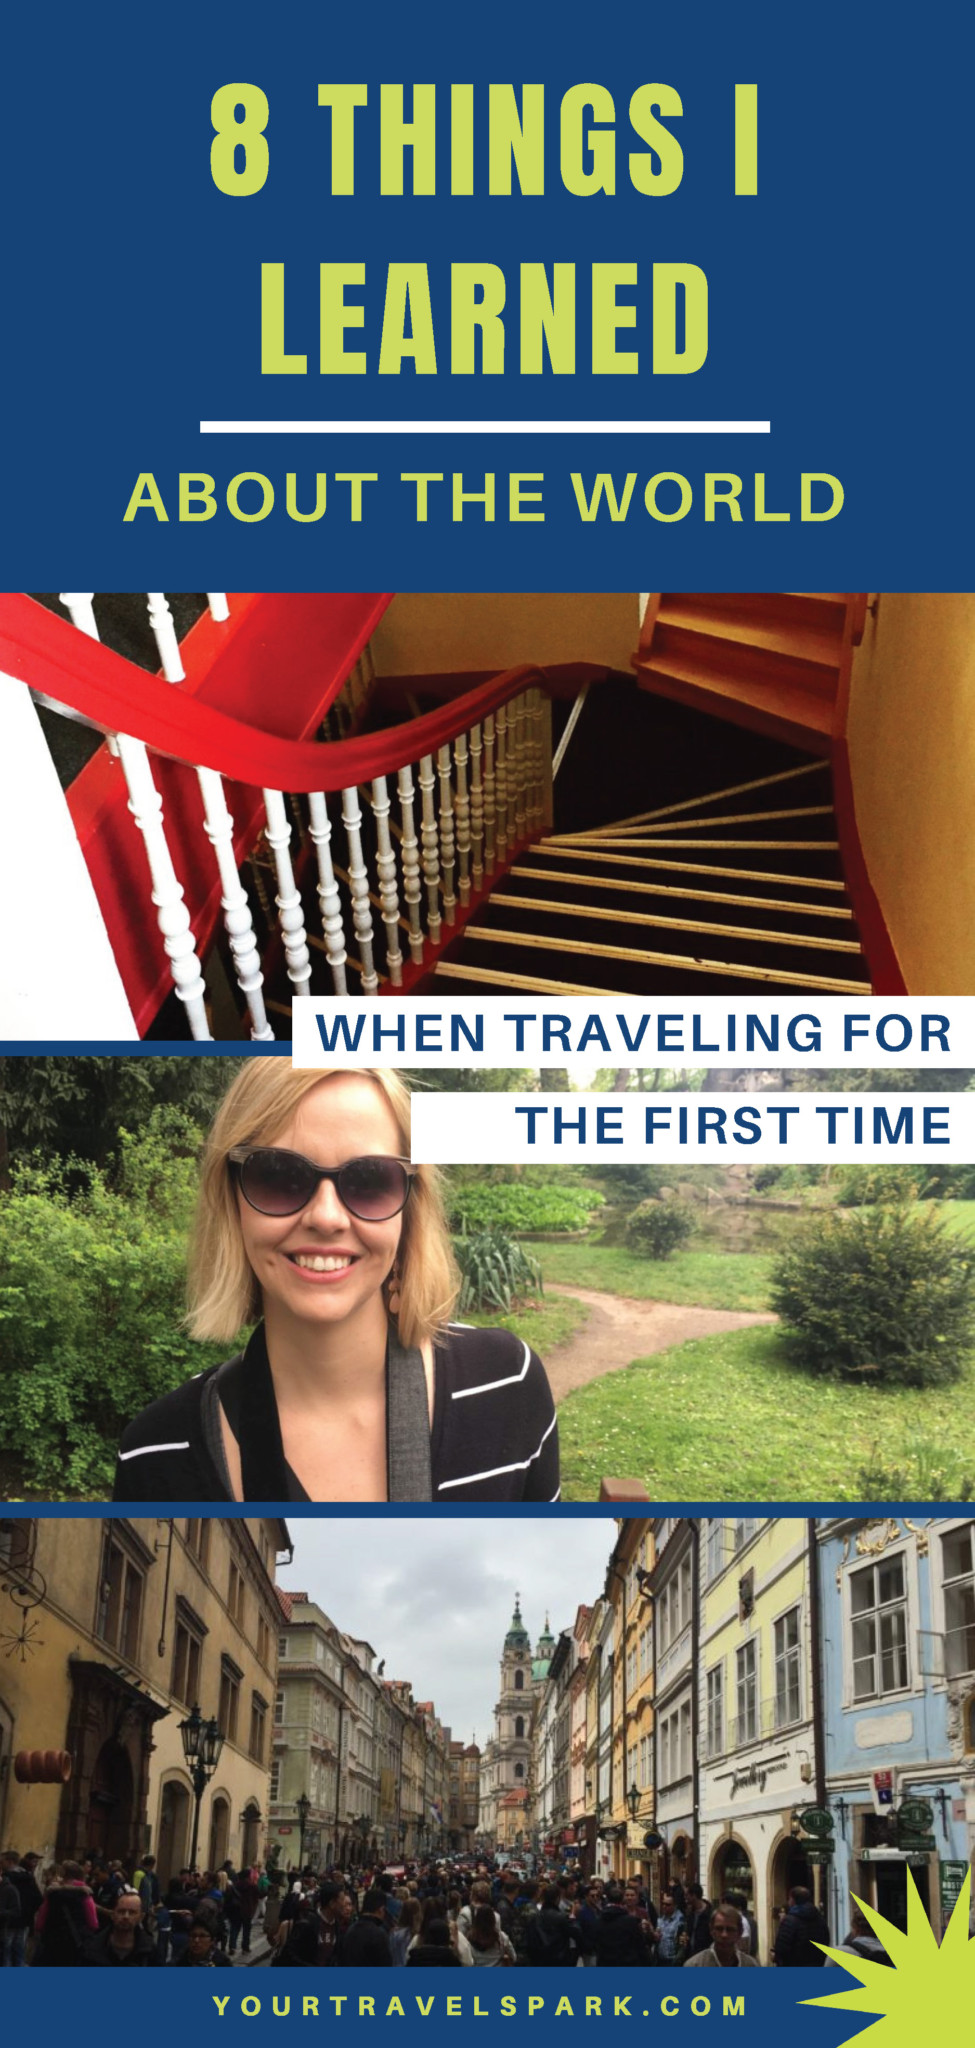 Traveling for the first time can be a fun and insightful experience. I learned so many things about myself and the world when traveling for the first time. #traveltips #traveling #travel #travelinternationally #internationaltravel